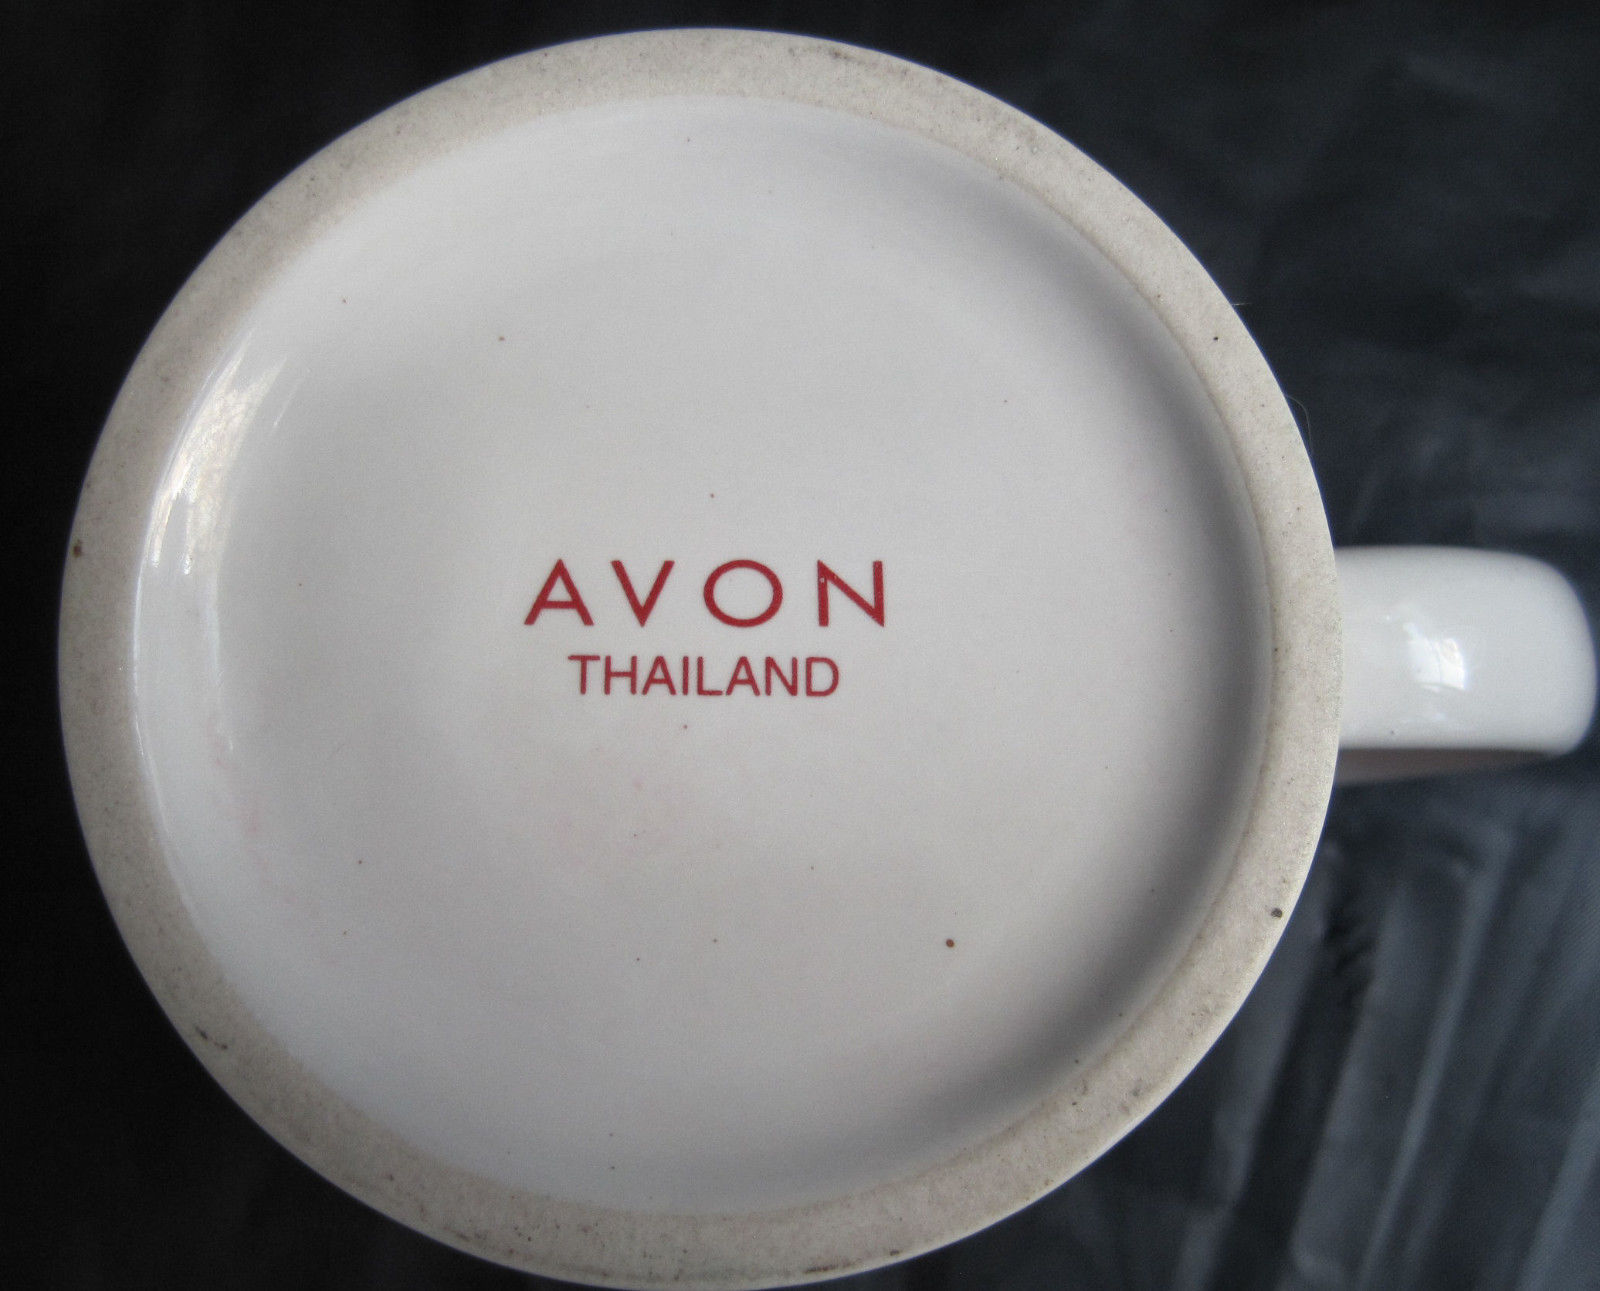 Avon Friends Forever Valentine Hearts Coffee Latte Tea Drinking Cup Mug image 5